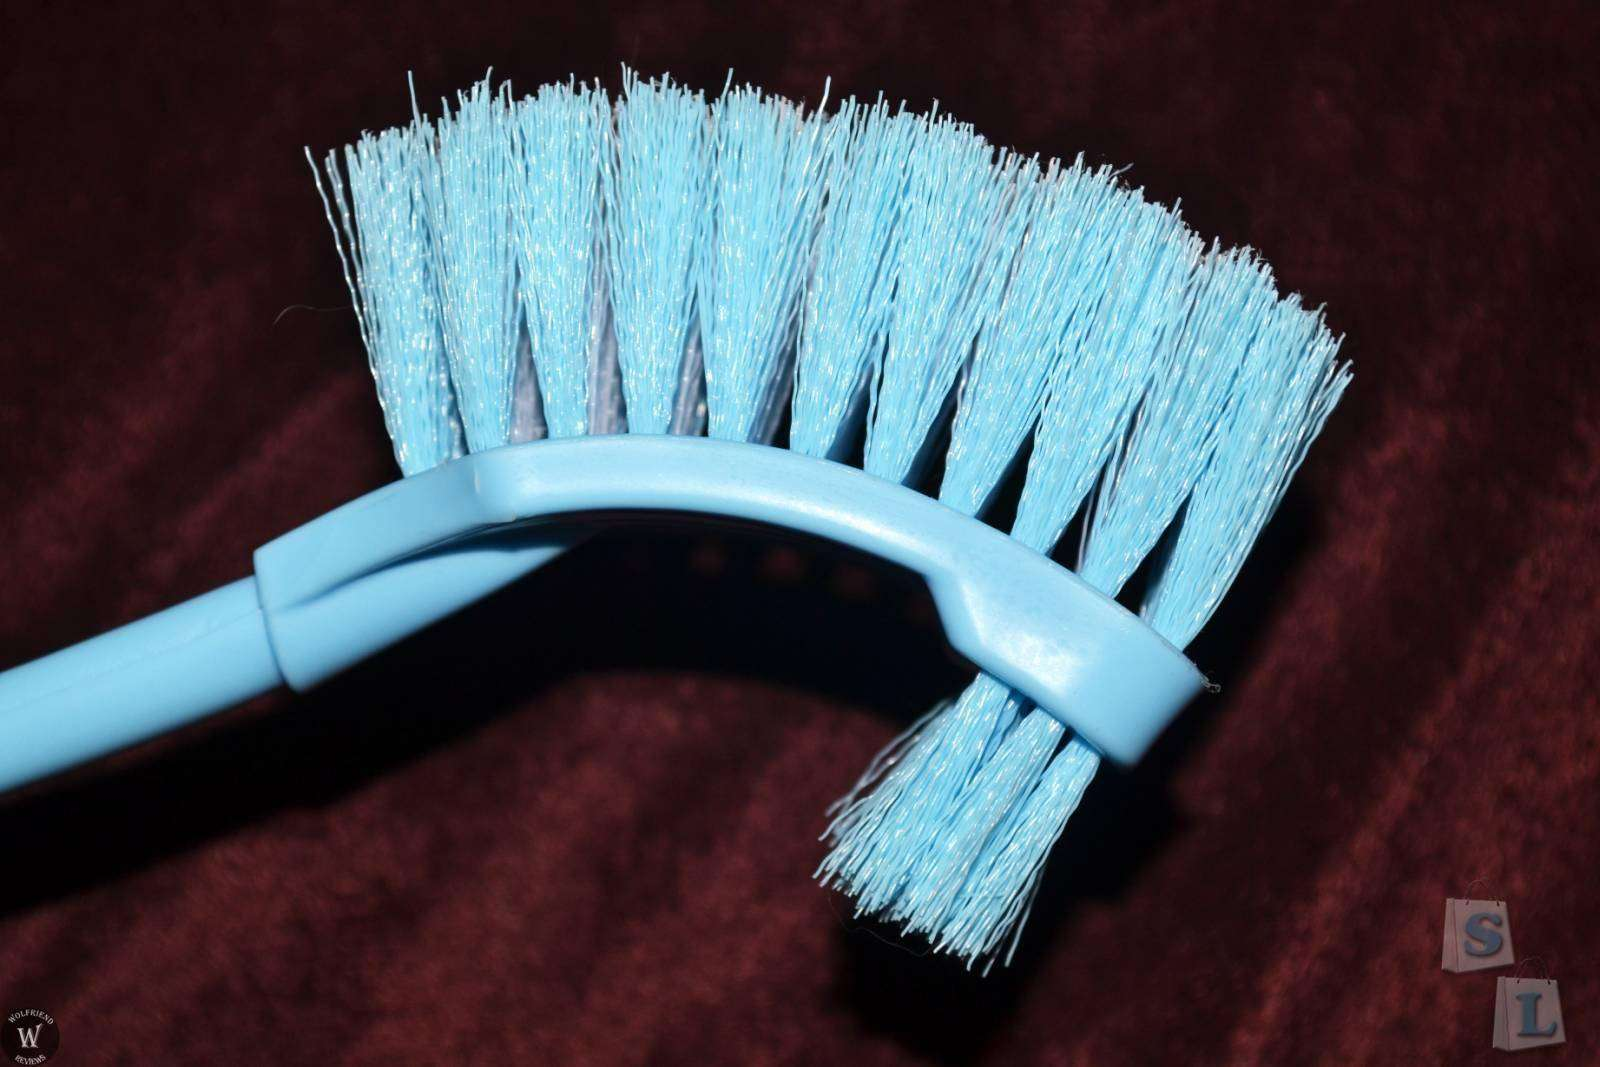 ChinaBuye: Щетка для унитаза, Home Bathroom Cleaning Tool Double Sides Toilet Scrubbing Brush